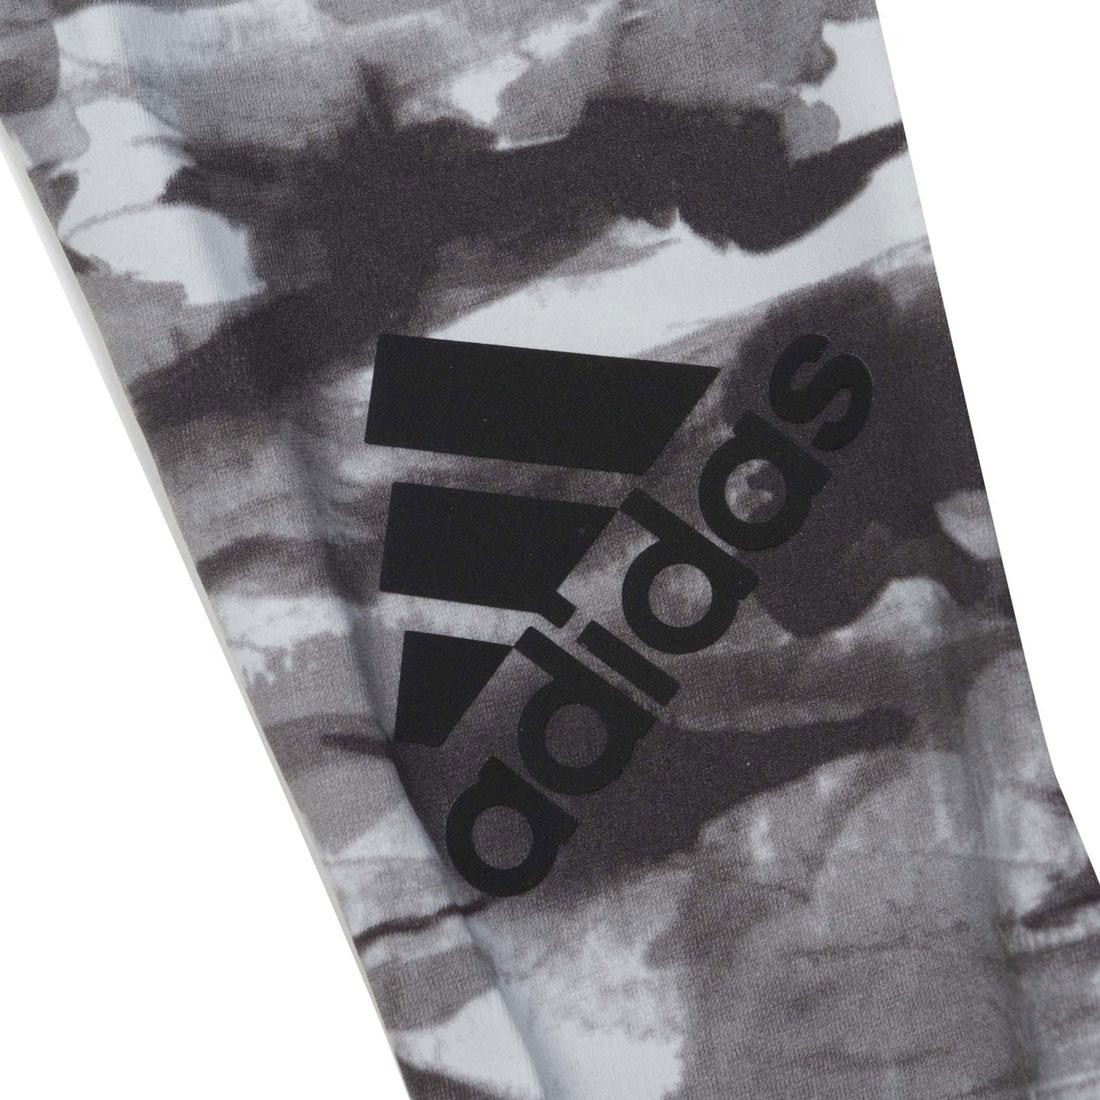 b6f7a2c7e23 Adidas x Undefeated Men Alphaskin 360 1/1 Tights (black / white / shift  grey)